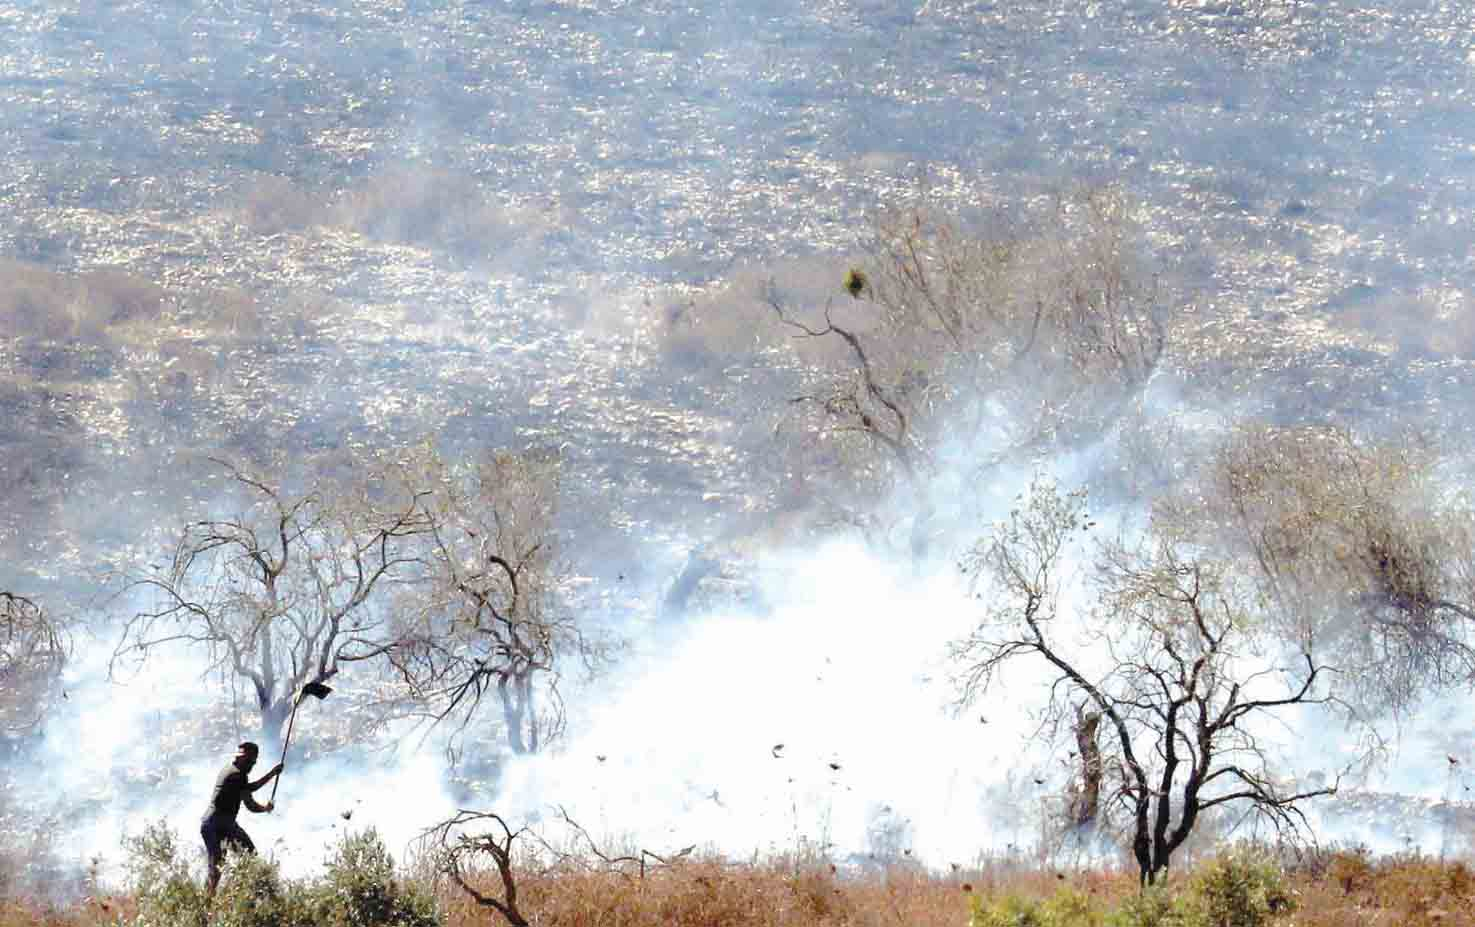 A Palestinian tries to extinguish a fire in an olive grove near the Palestinian village of Burin in the northern West Bank after an attack by Israeli settlers, October 16. (AFP)